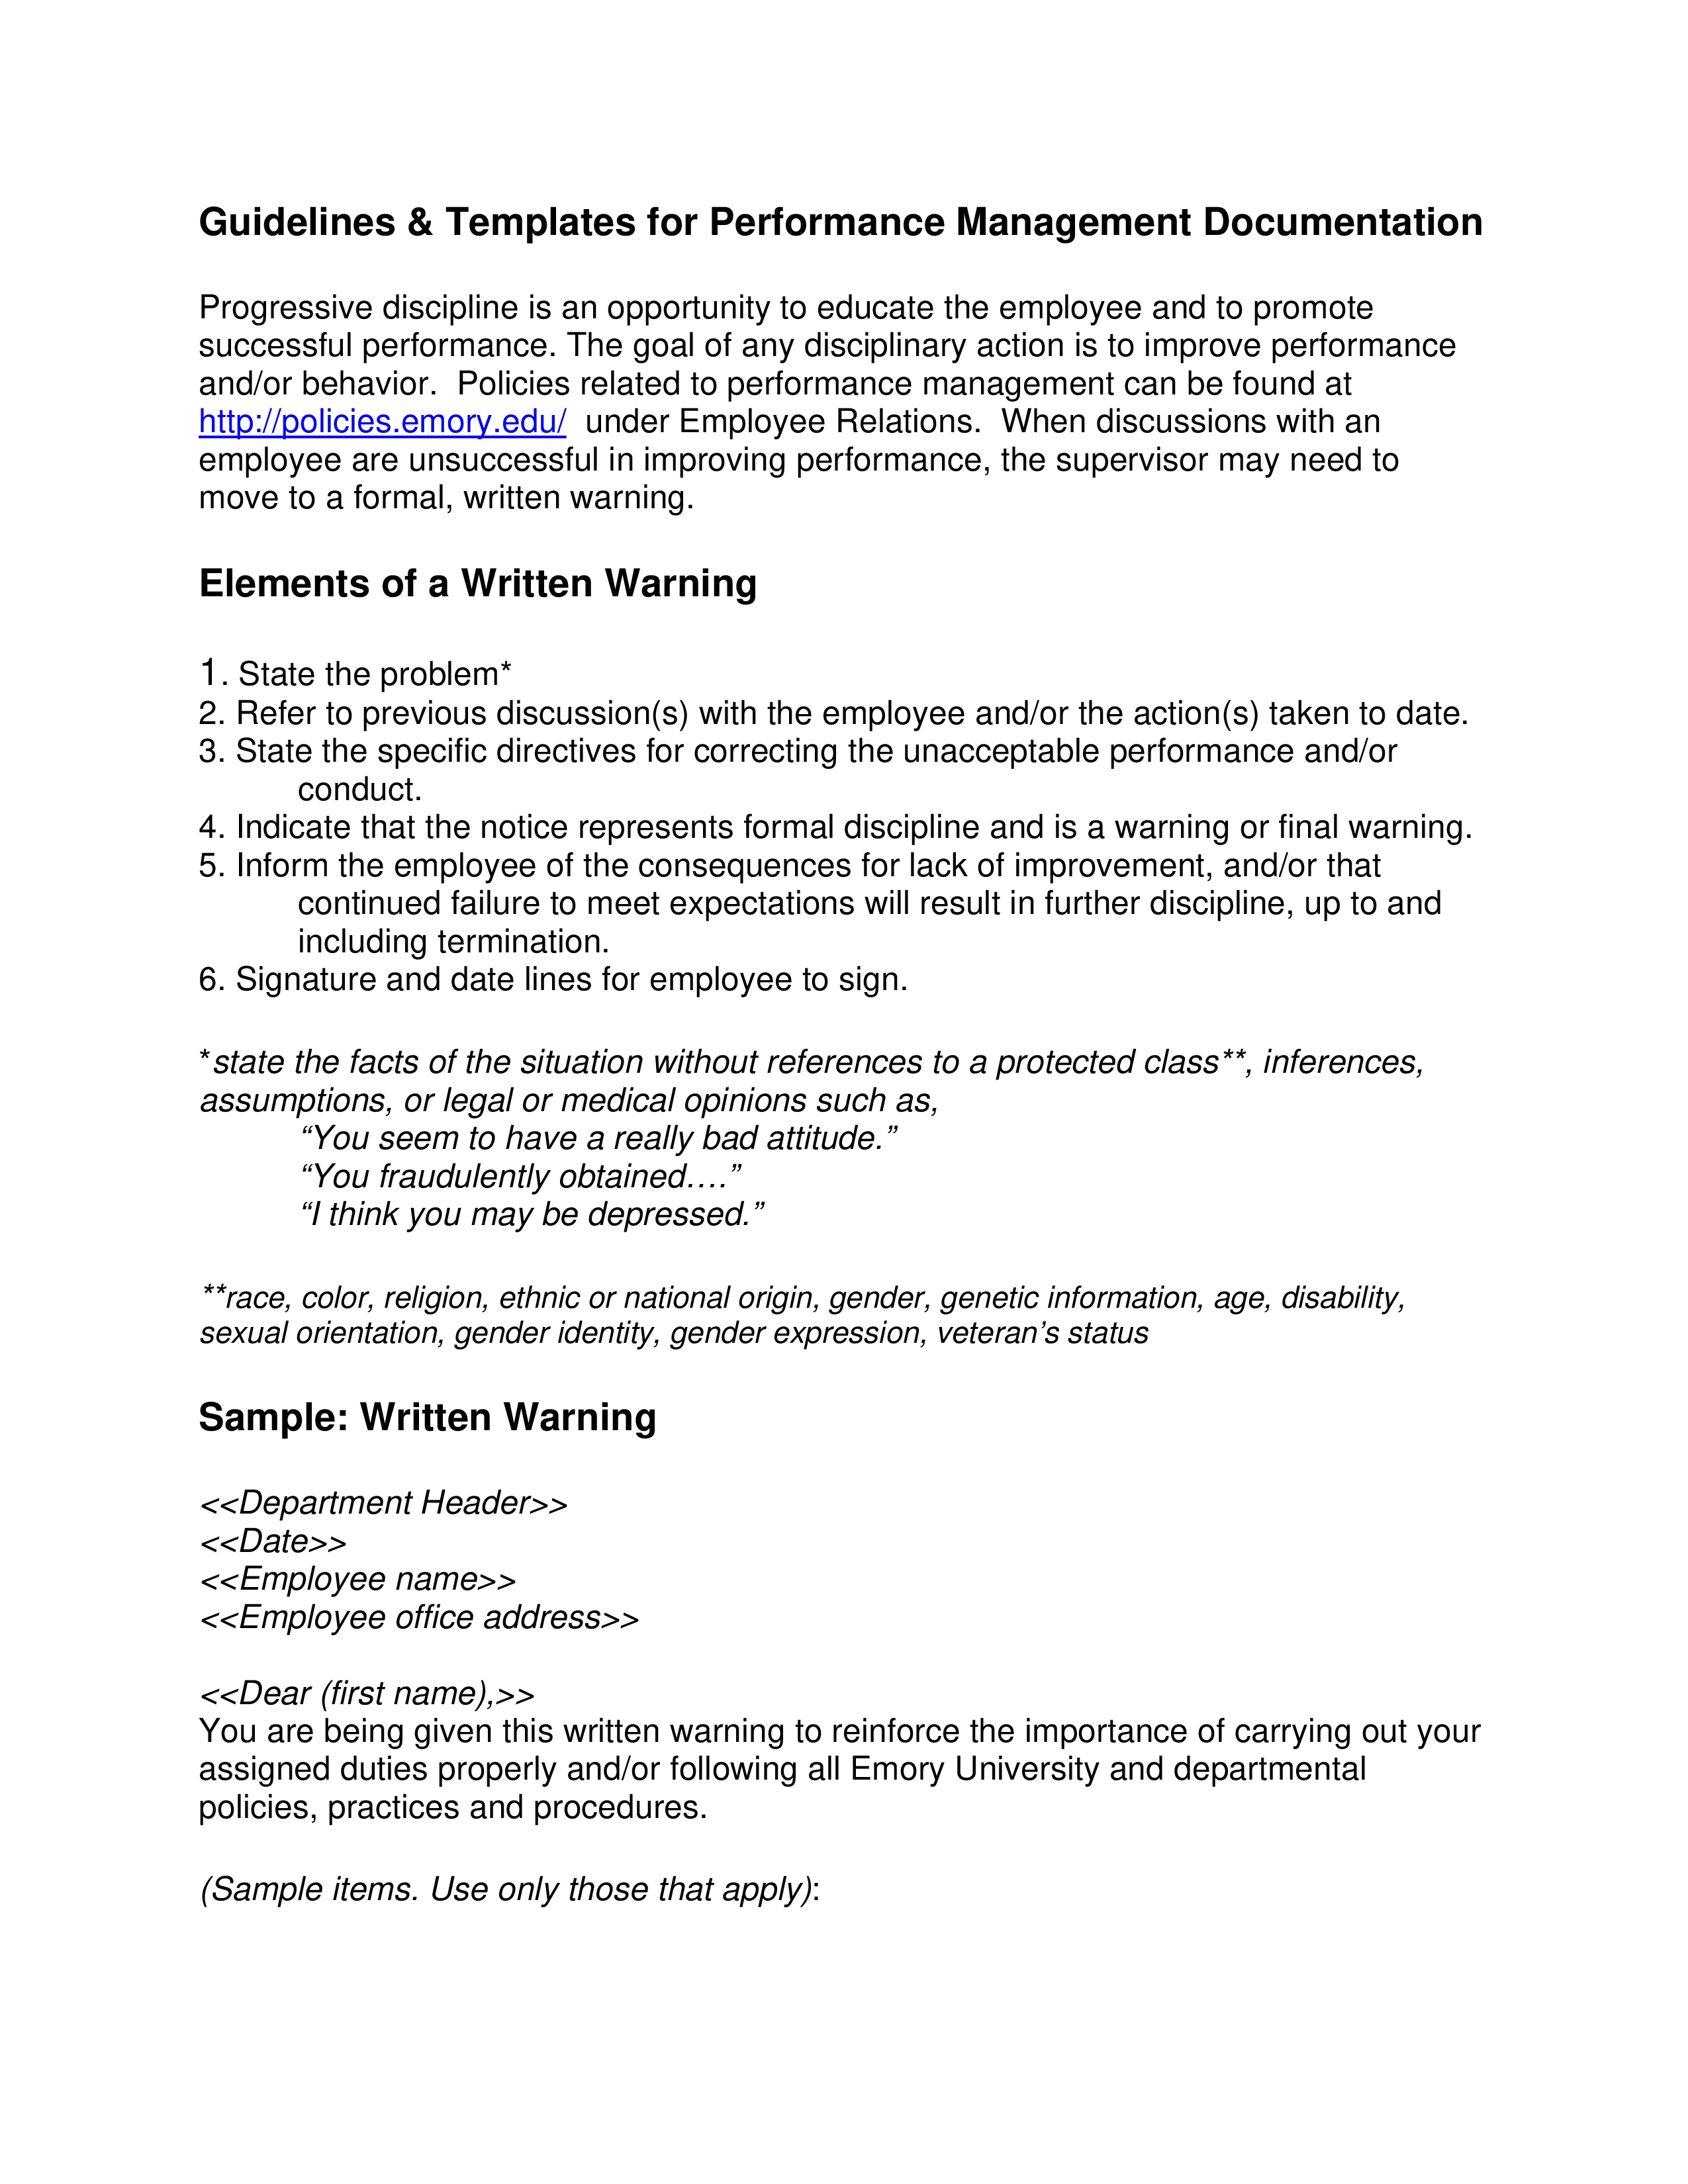 Behavior Warning Letter To Employee Templates At